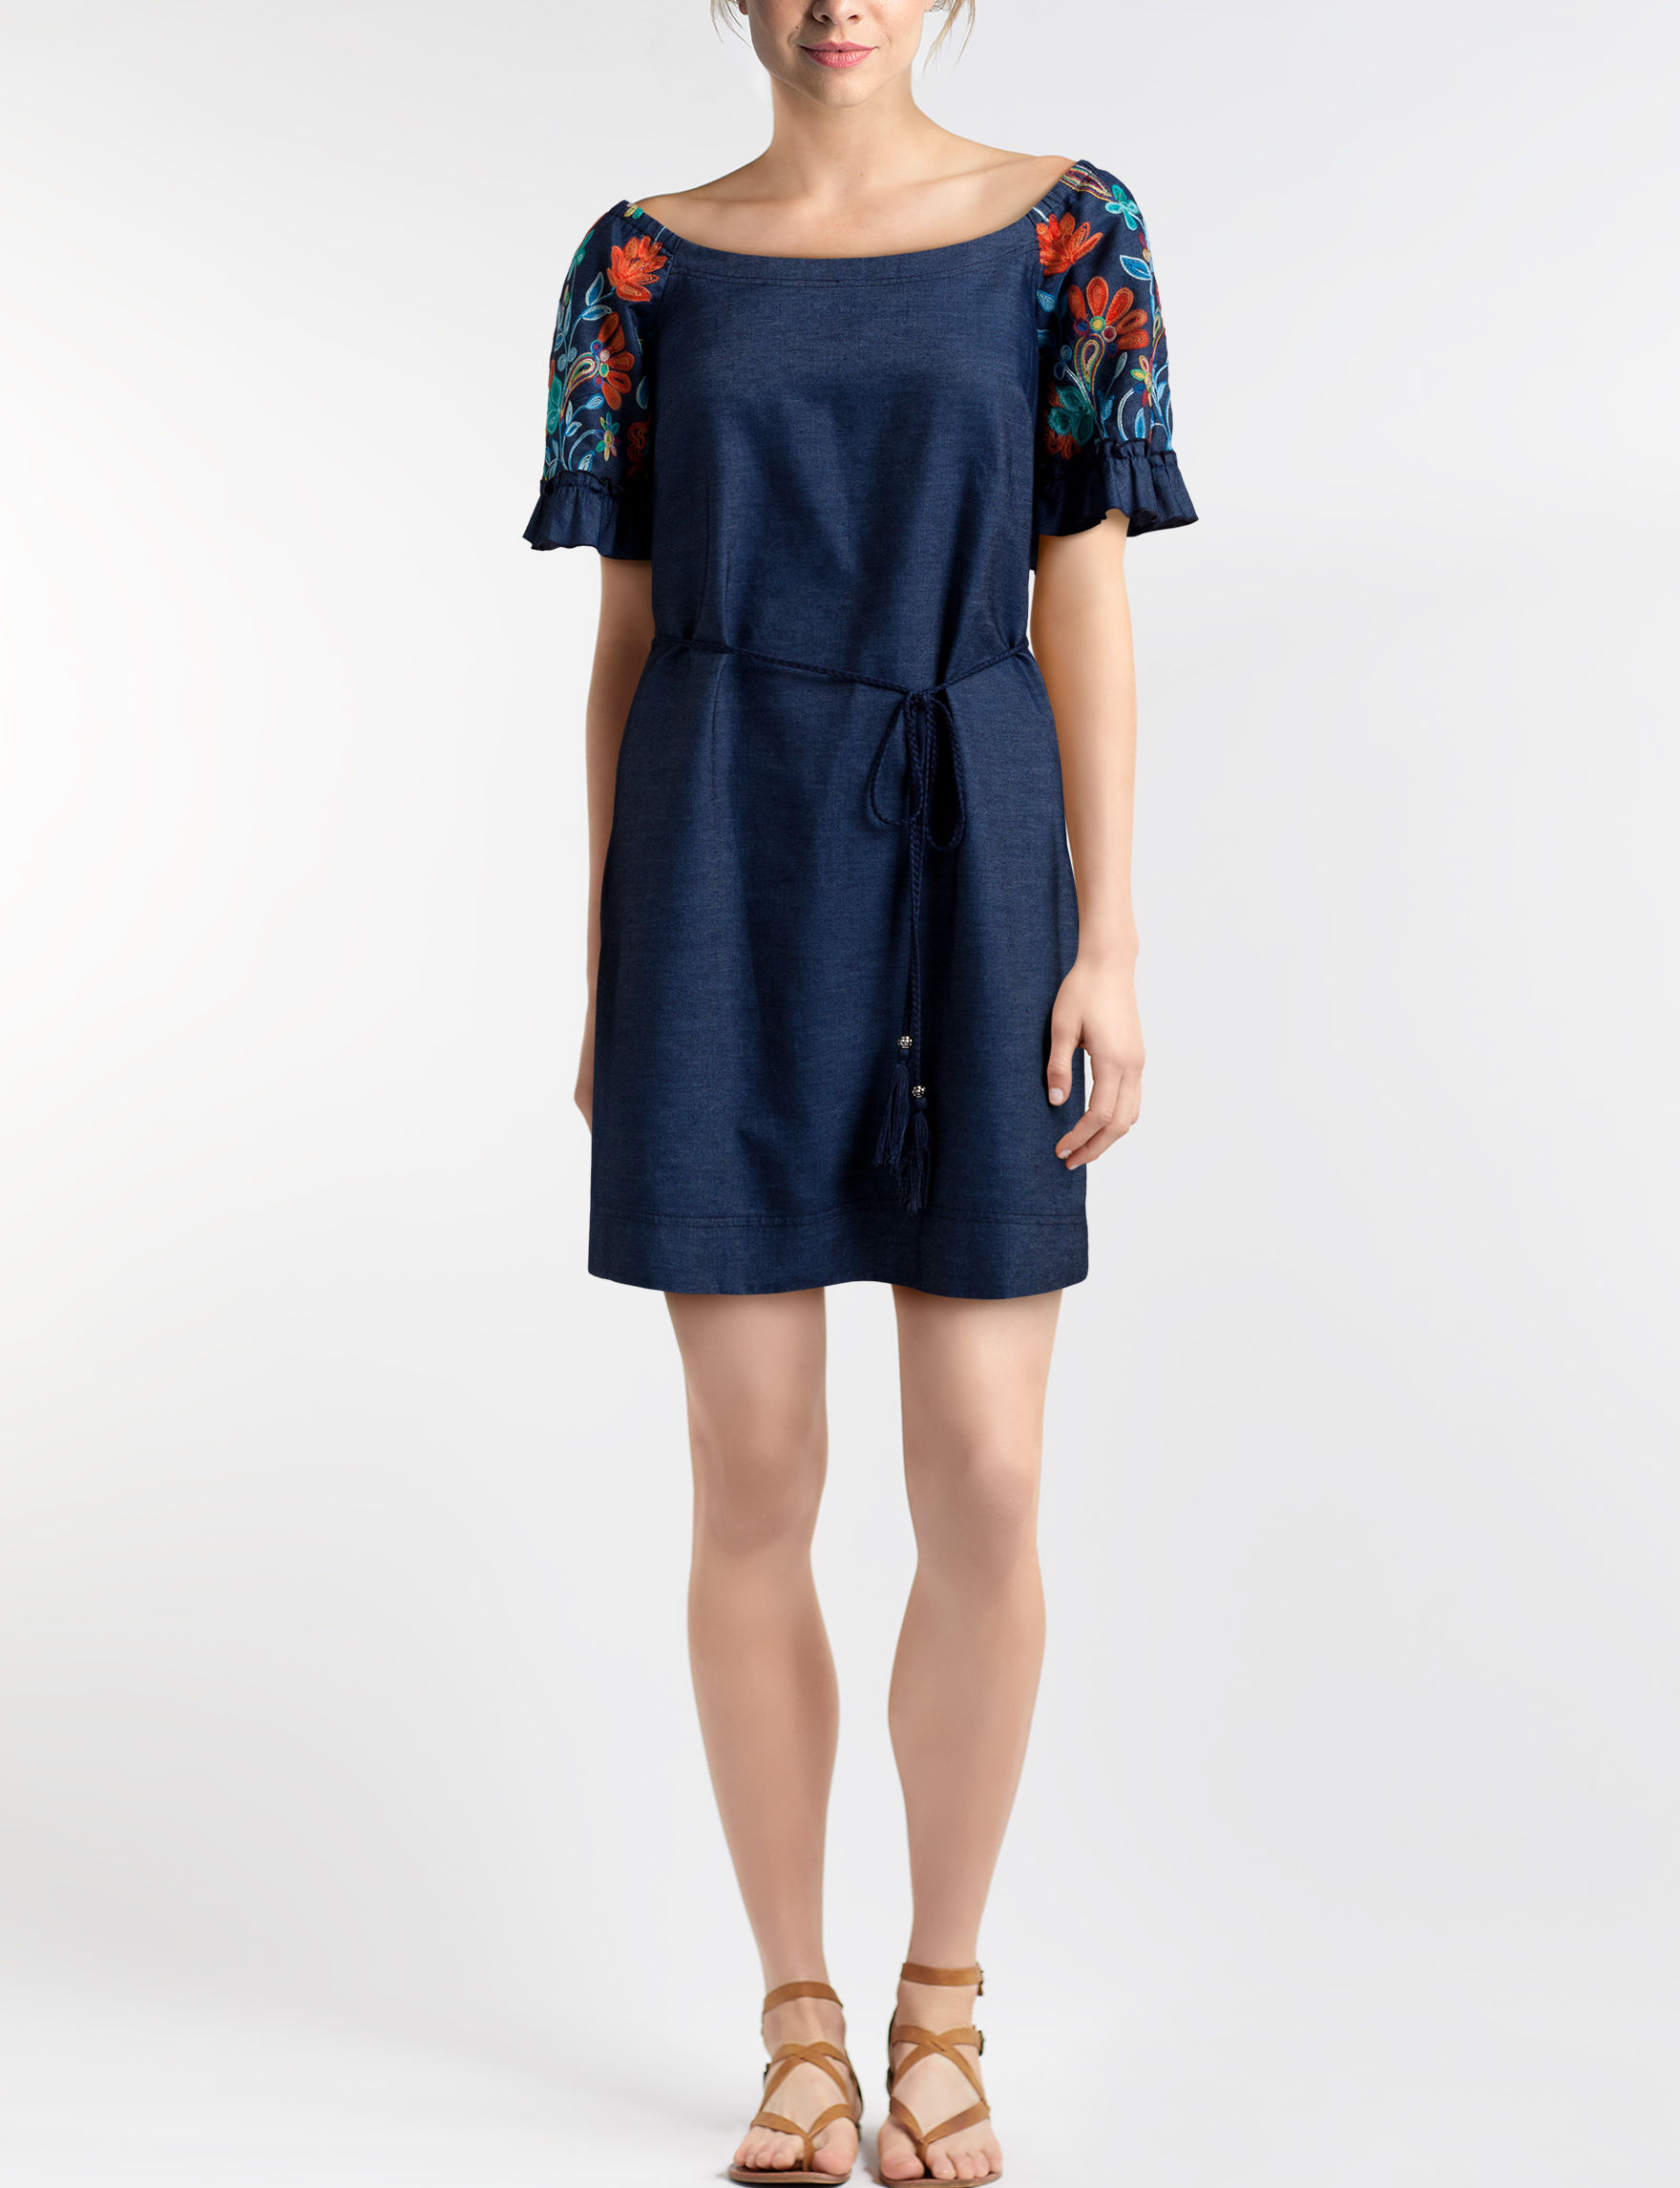 Robbie Bee Blue Everyday & Casual A-line Dresses Fit & Flare Dresses Sundresses